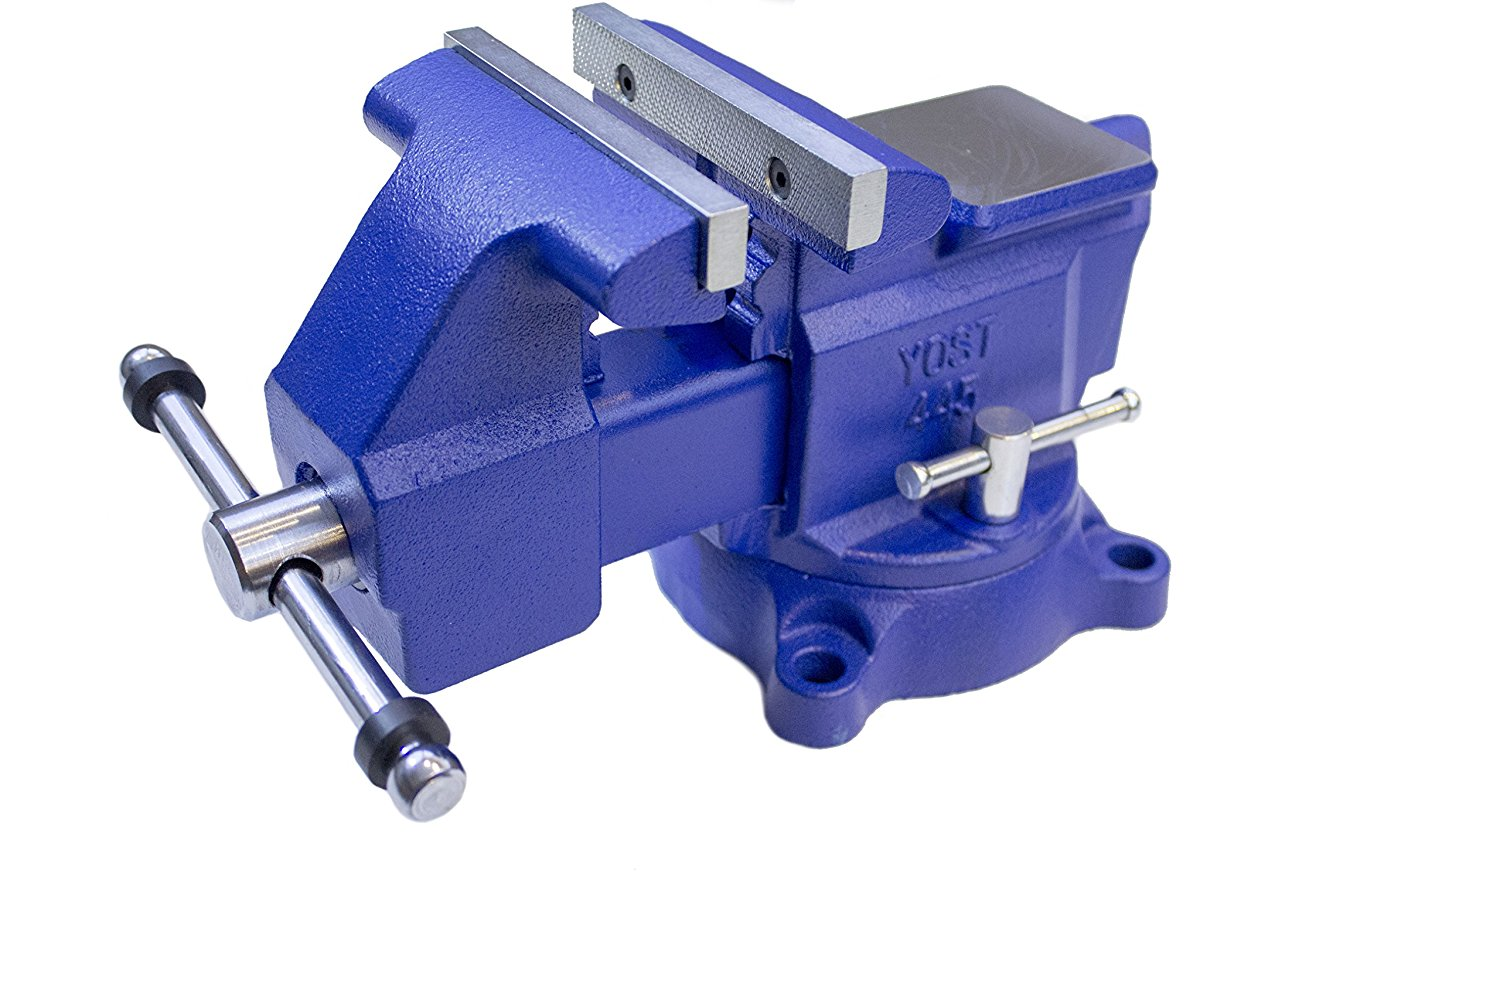 "Yost Vises 480 8"" Heavy Duty Utility Combination Pipe and Bench Vise by Zenith Innovations Inc"